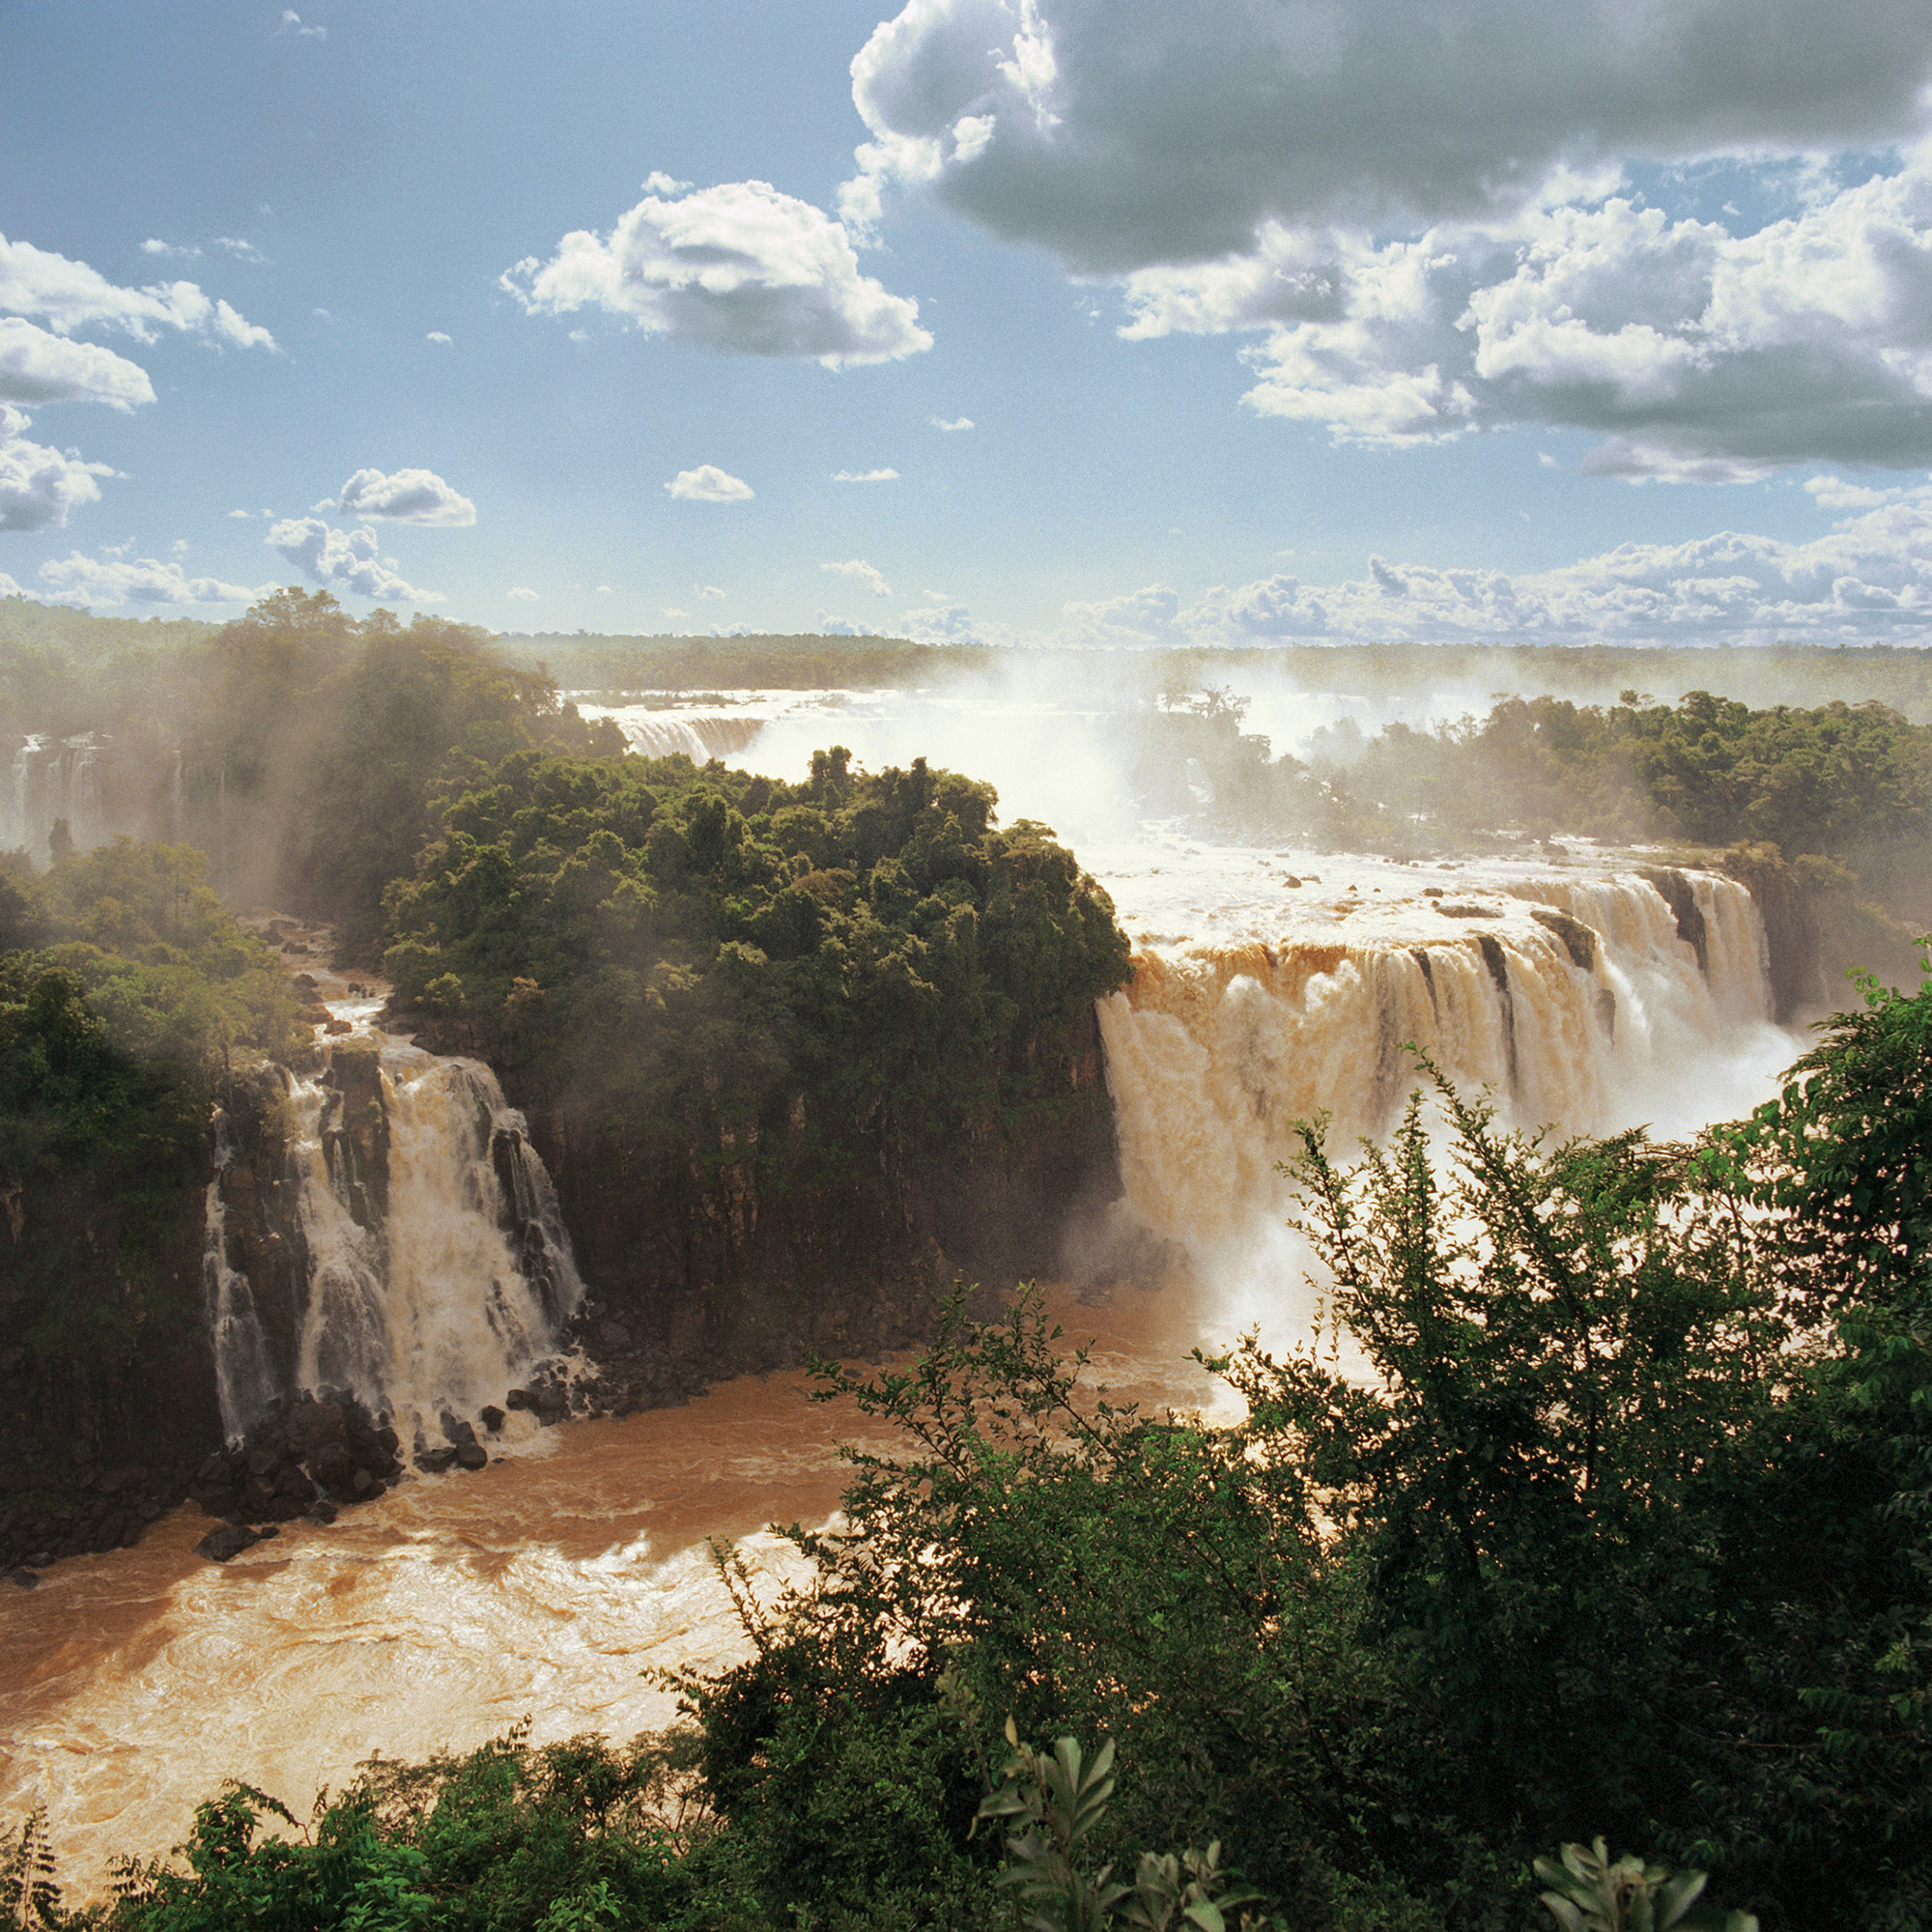 Samuel Curtis Johnson, Jr.'s photography of Noel Kemp Falls in South America